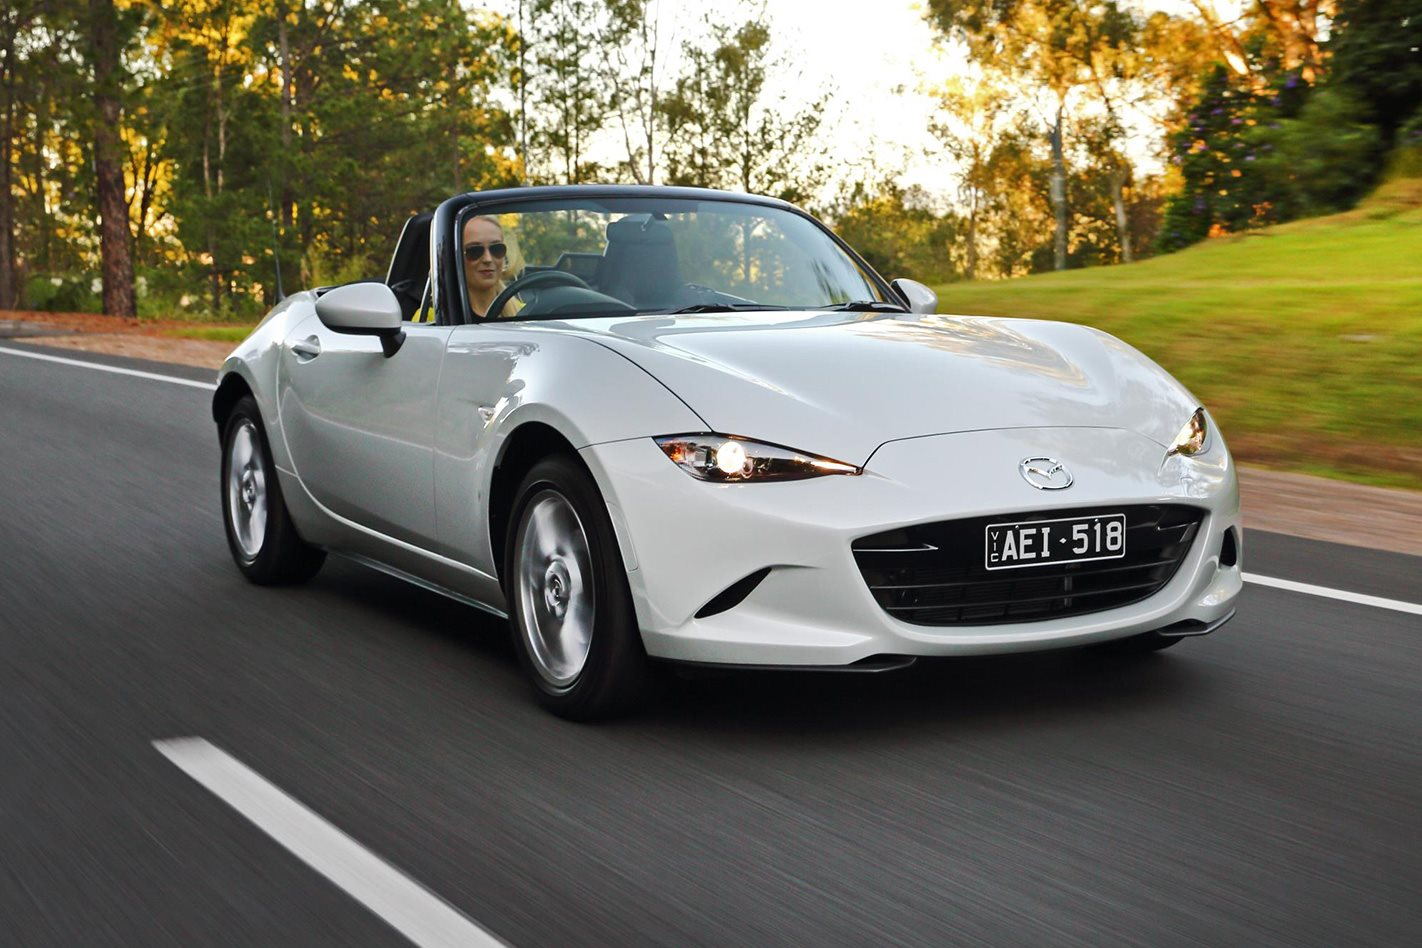 Ten things you didn't know about the Mazda MX-5